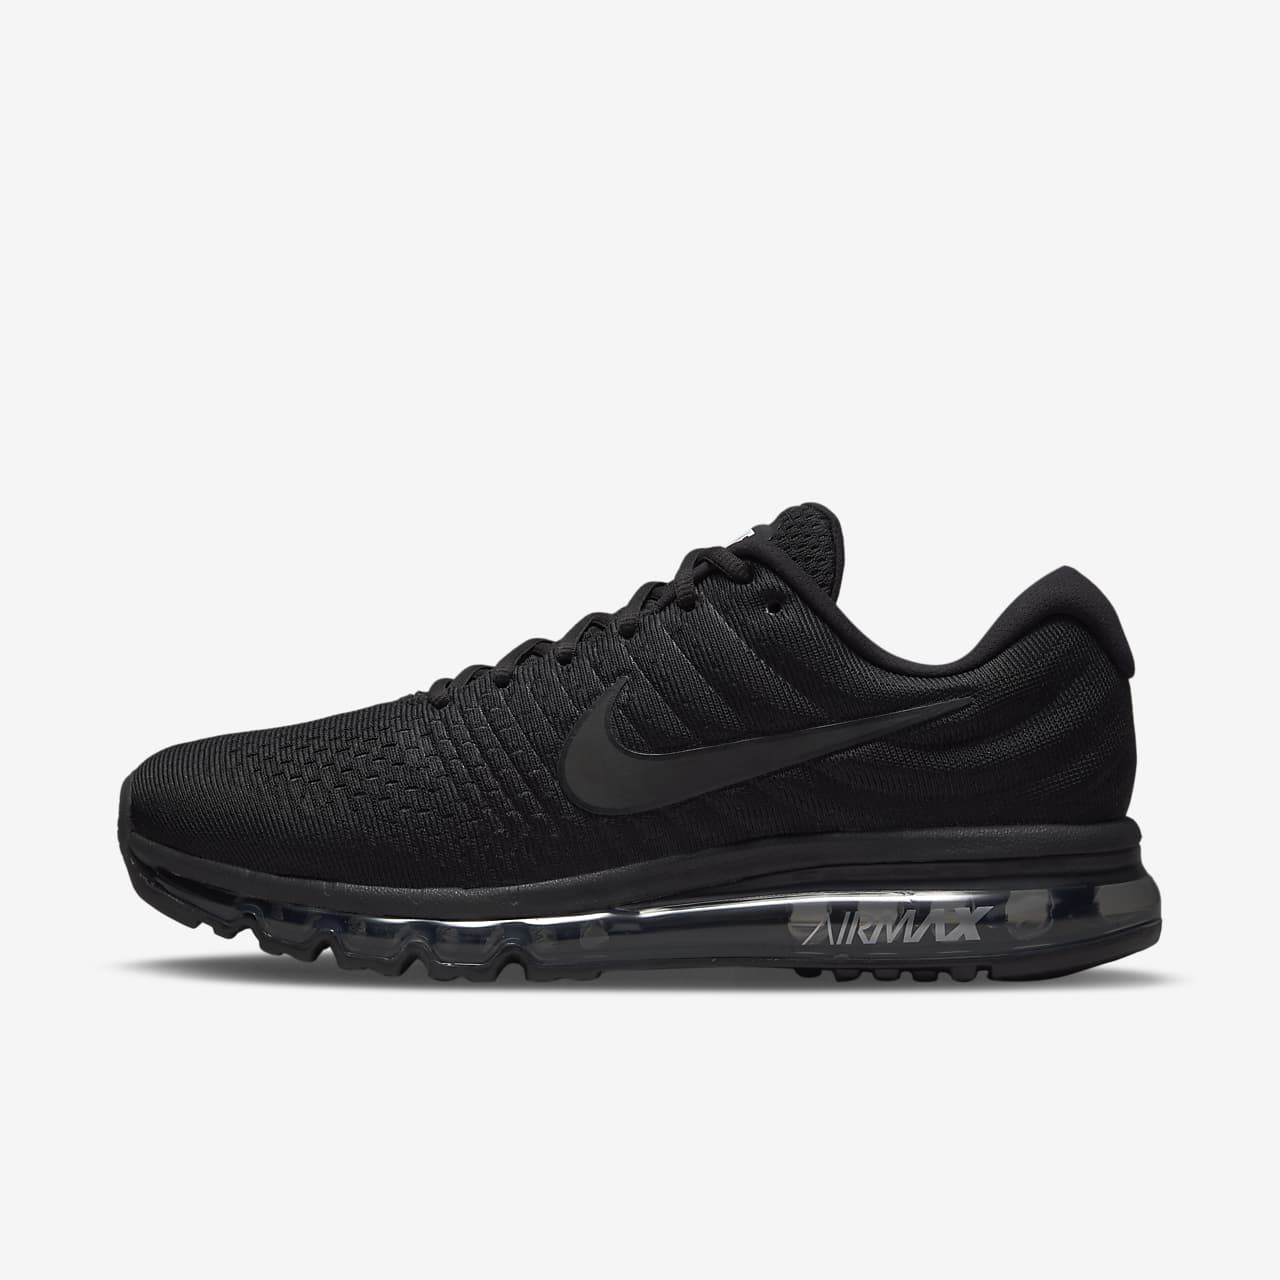 best sneakers 2a5b3 a7309 ... Nike Air Max 2017 Herenschoen